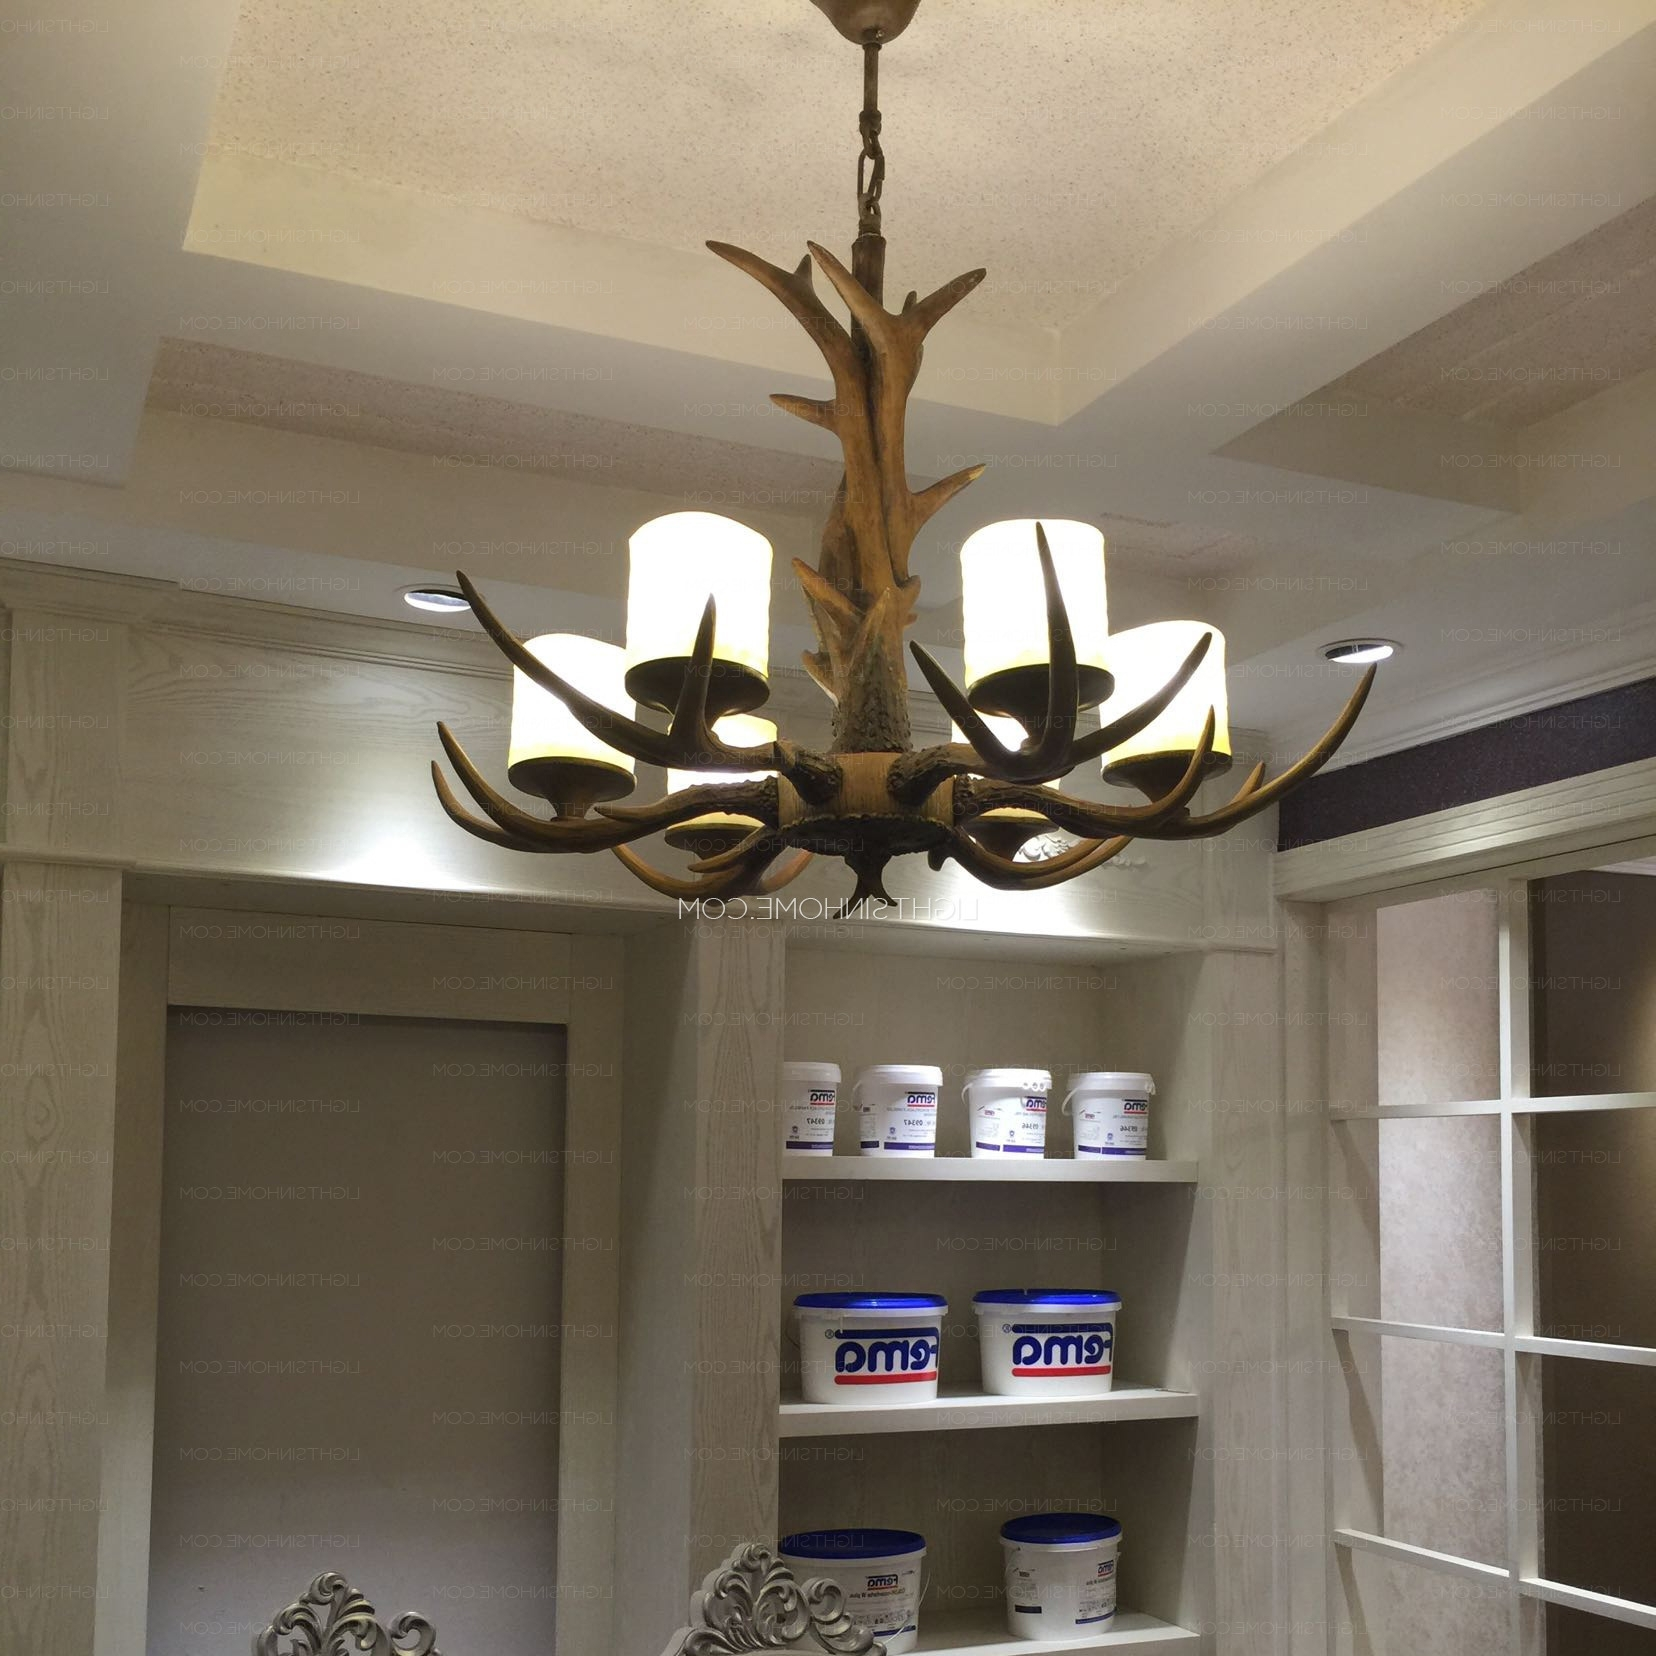 6 Light Resin Cylinder Shade Glass Antler Chandelier Pertaining To Best And Newest Turquoise Antler Chandeliers (Gallery 12 of 20)